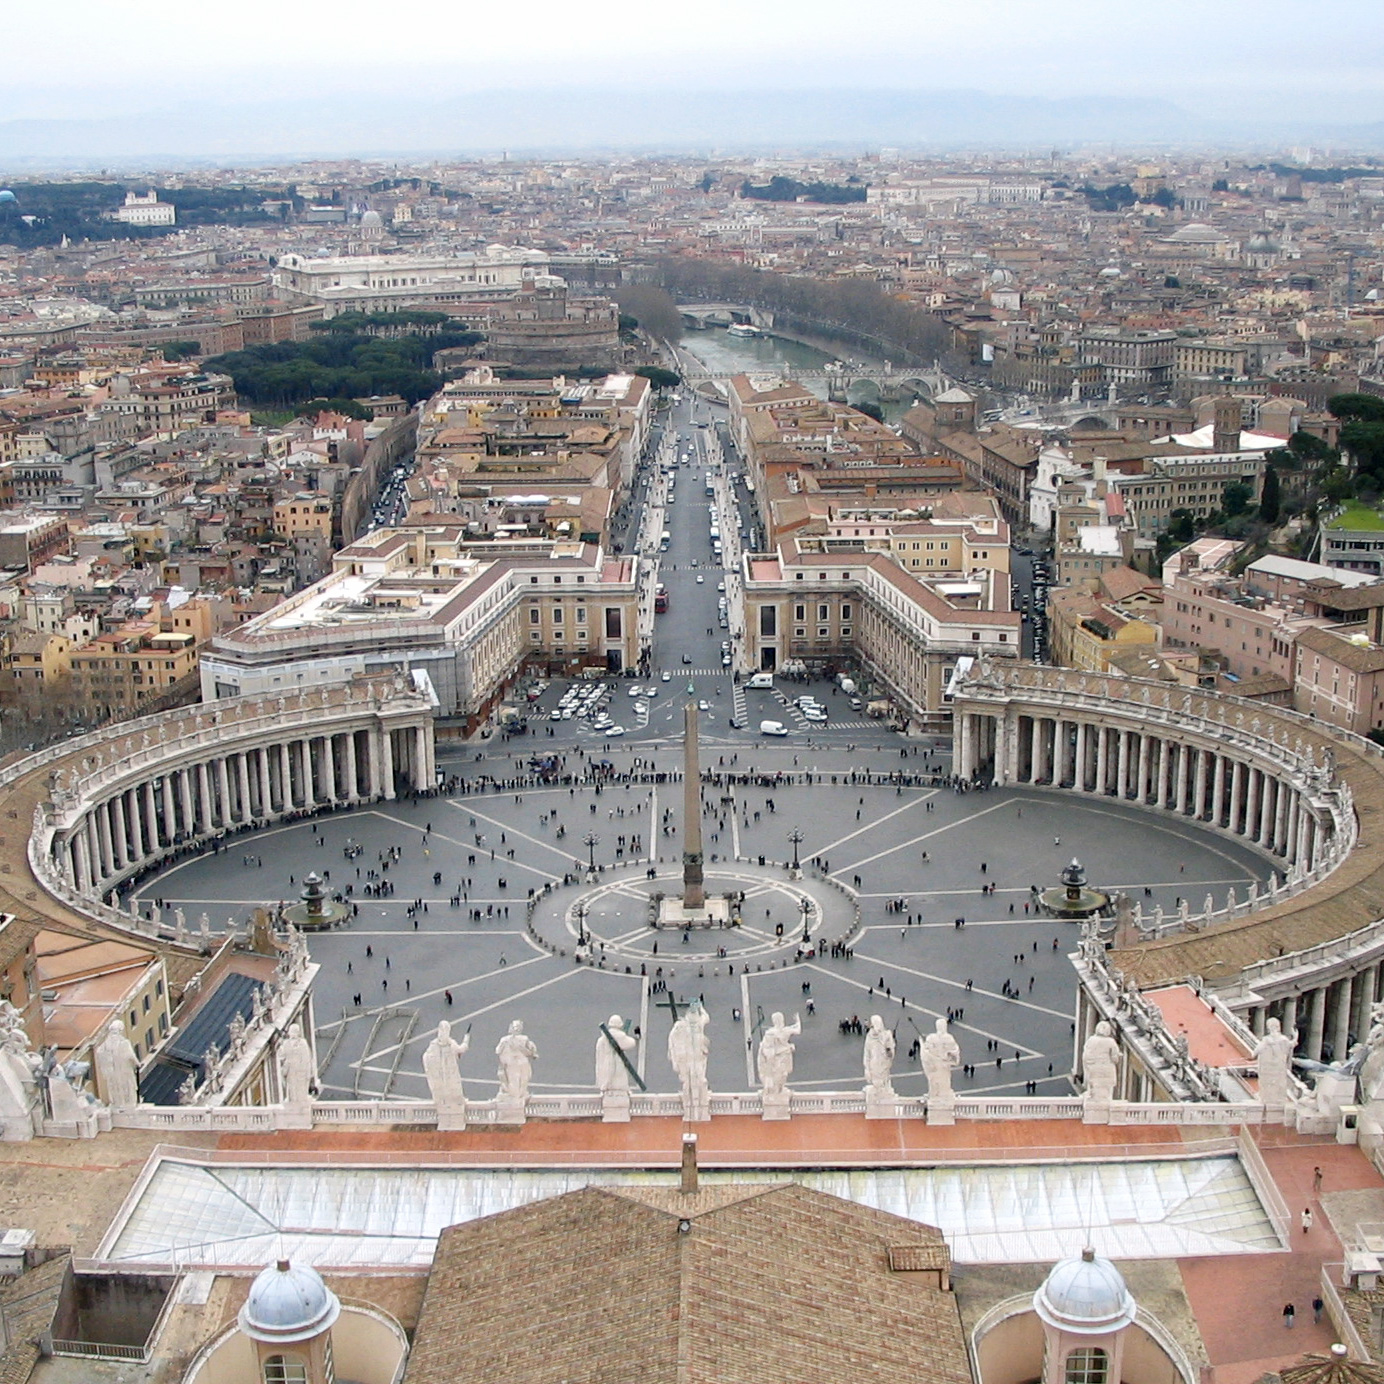 http://upload.wikimedia.org/wikipedia/commons/5/5b/Saint_Peter%27s_Square_from_the_dome_v2.jpg